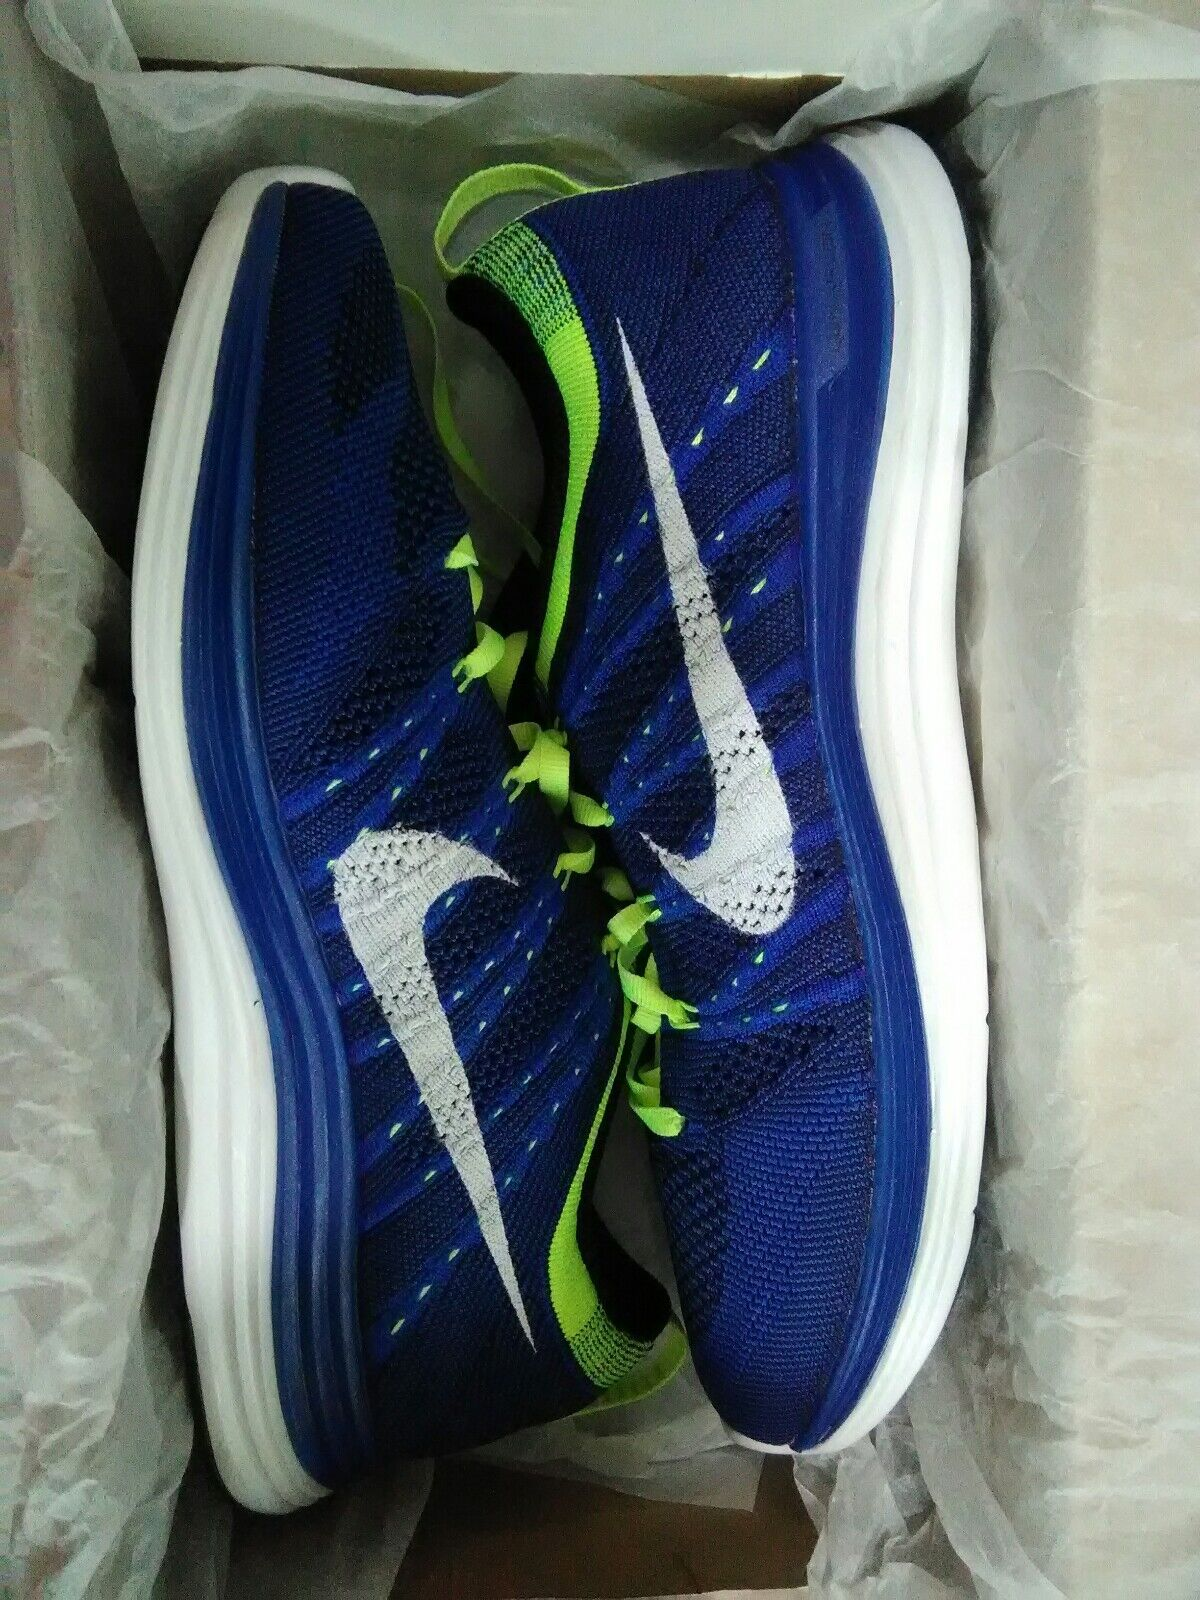 Nike Flyknit One 1 mens running shoes - size 8 bluee NEW